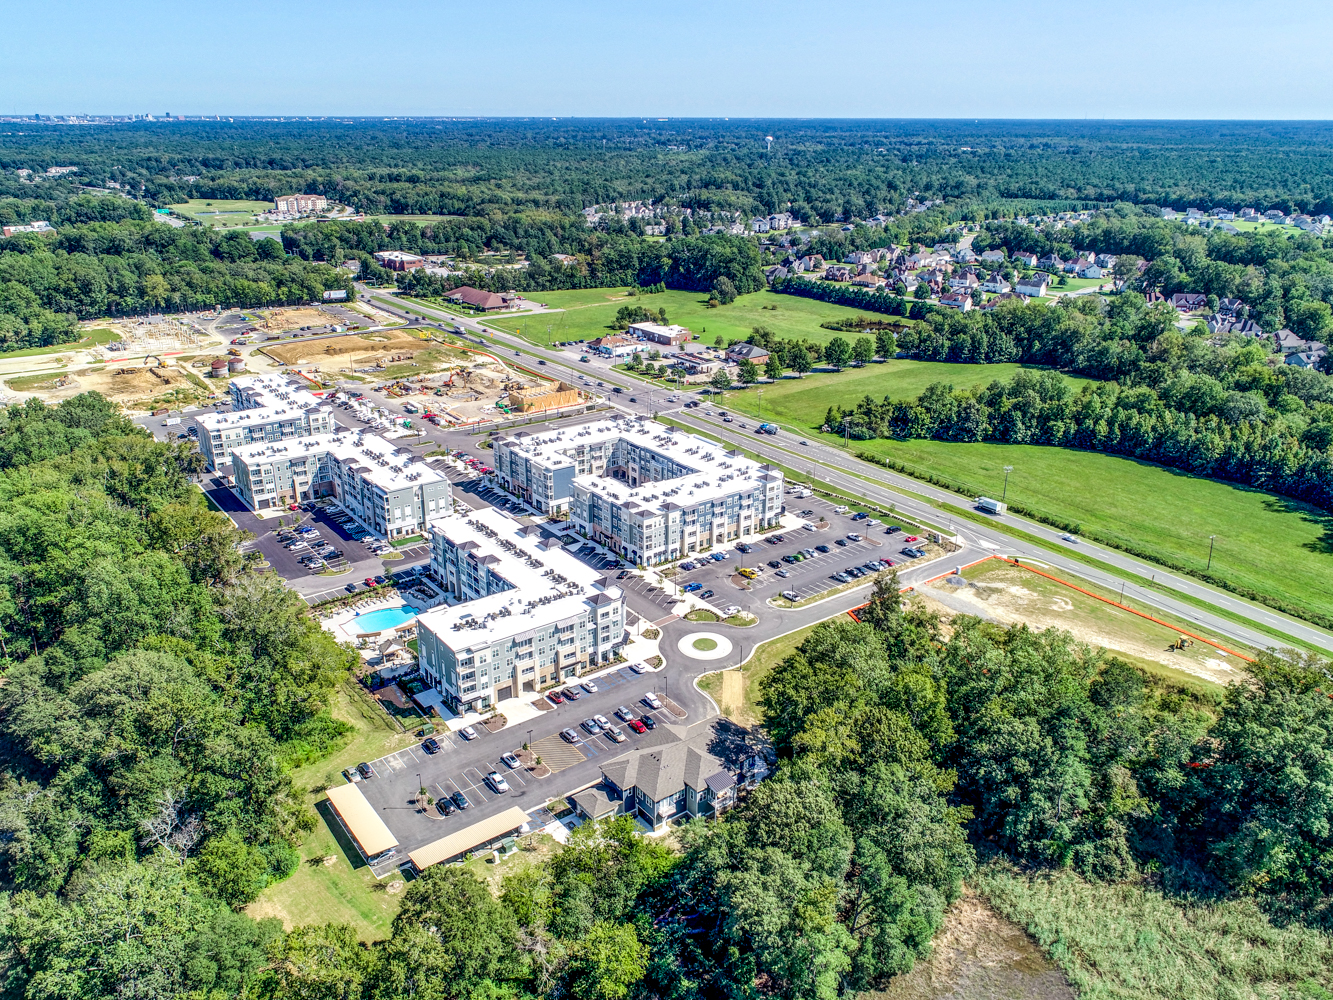 Aerial view of apartments in Suffolk Virginia on Bridge Road